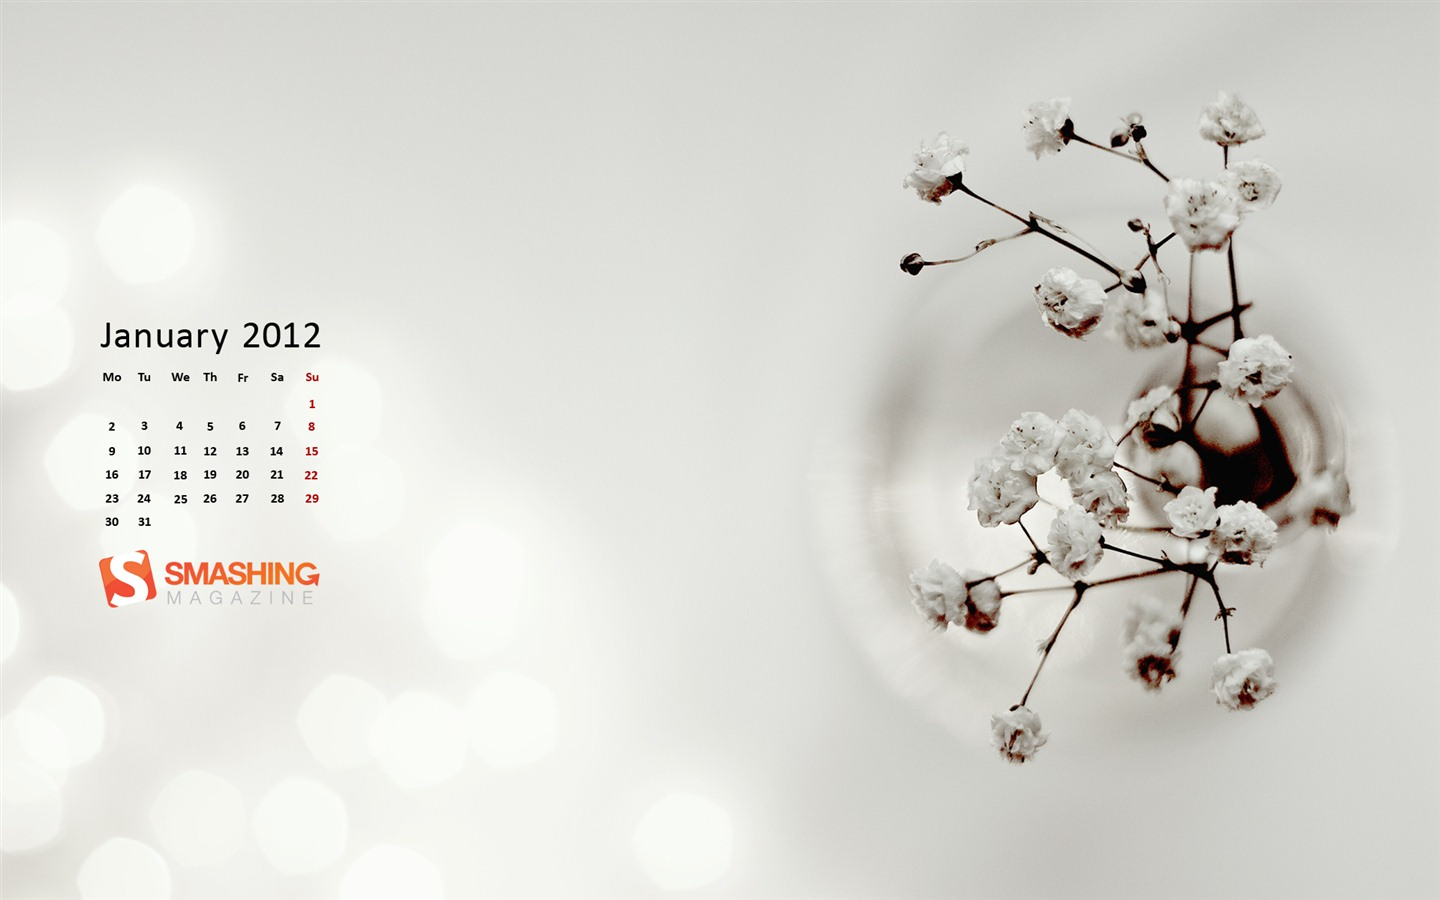 Januar 2012 Kalender Wallpapers #16 - 1440x900